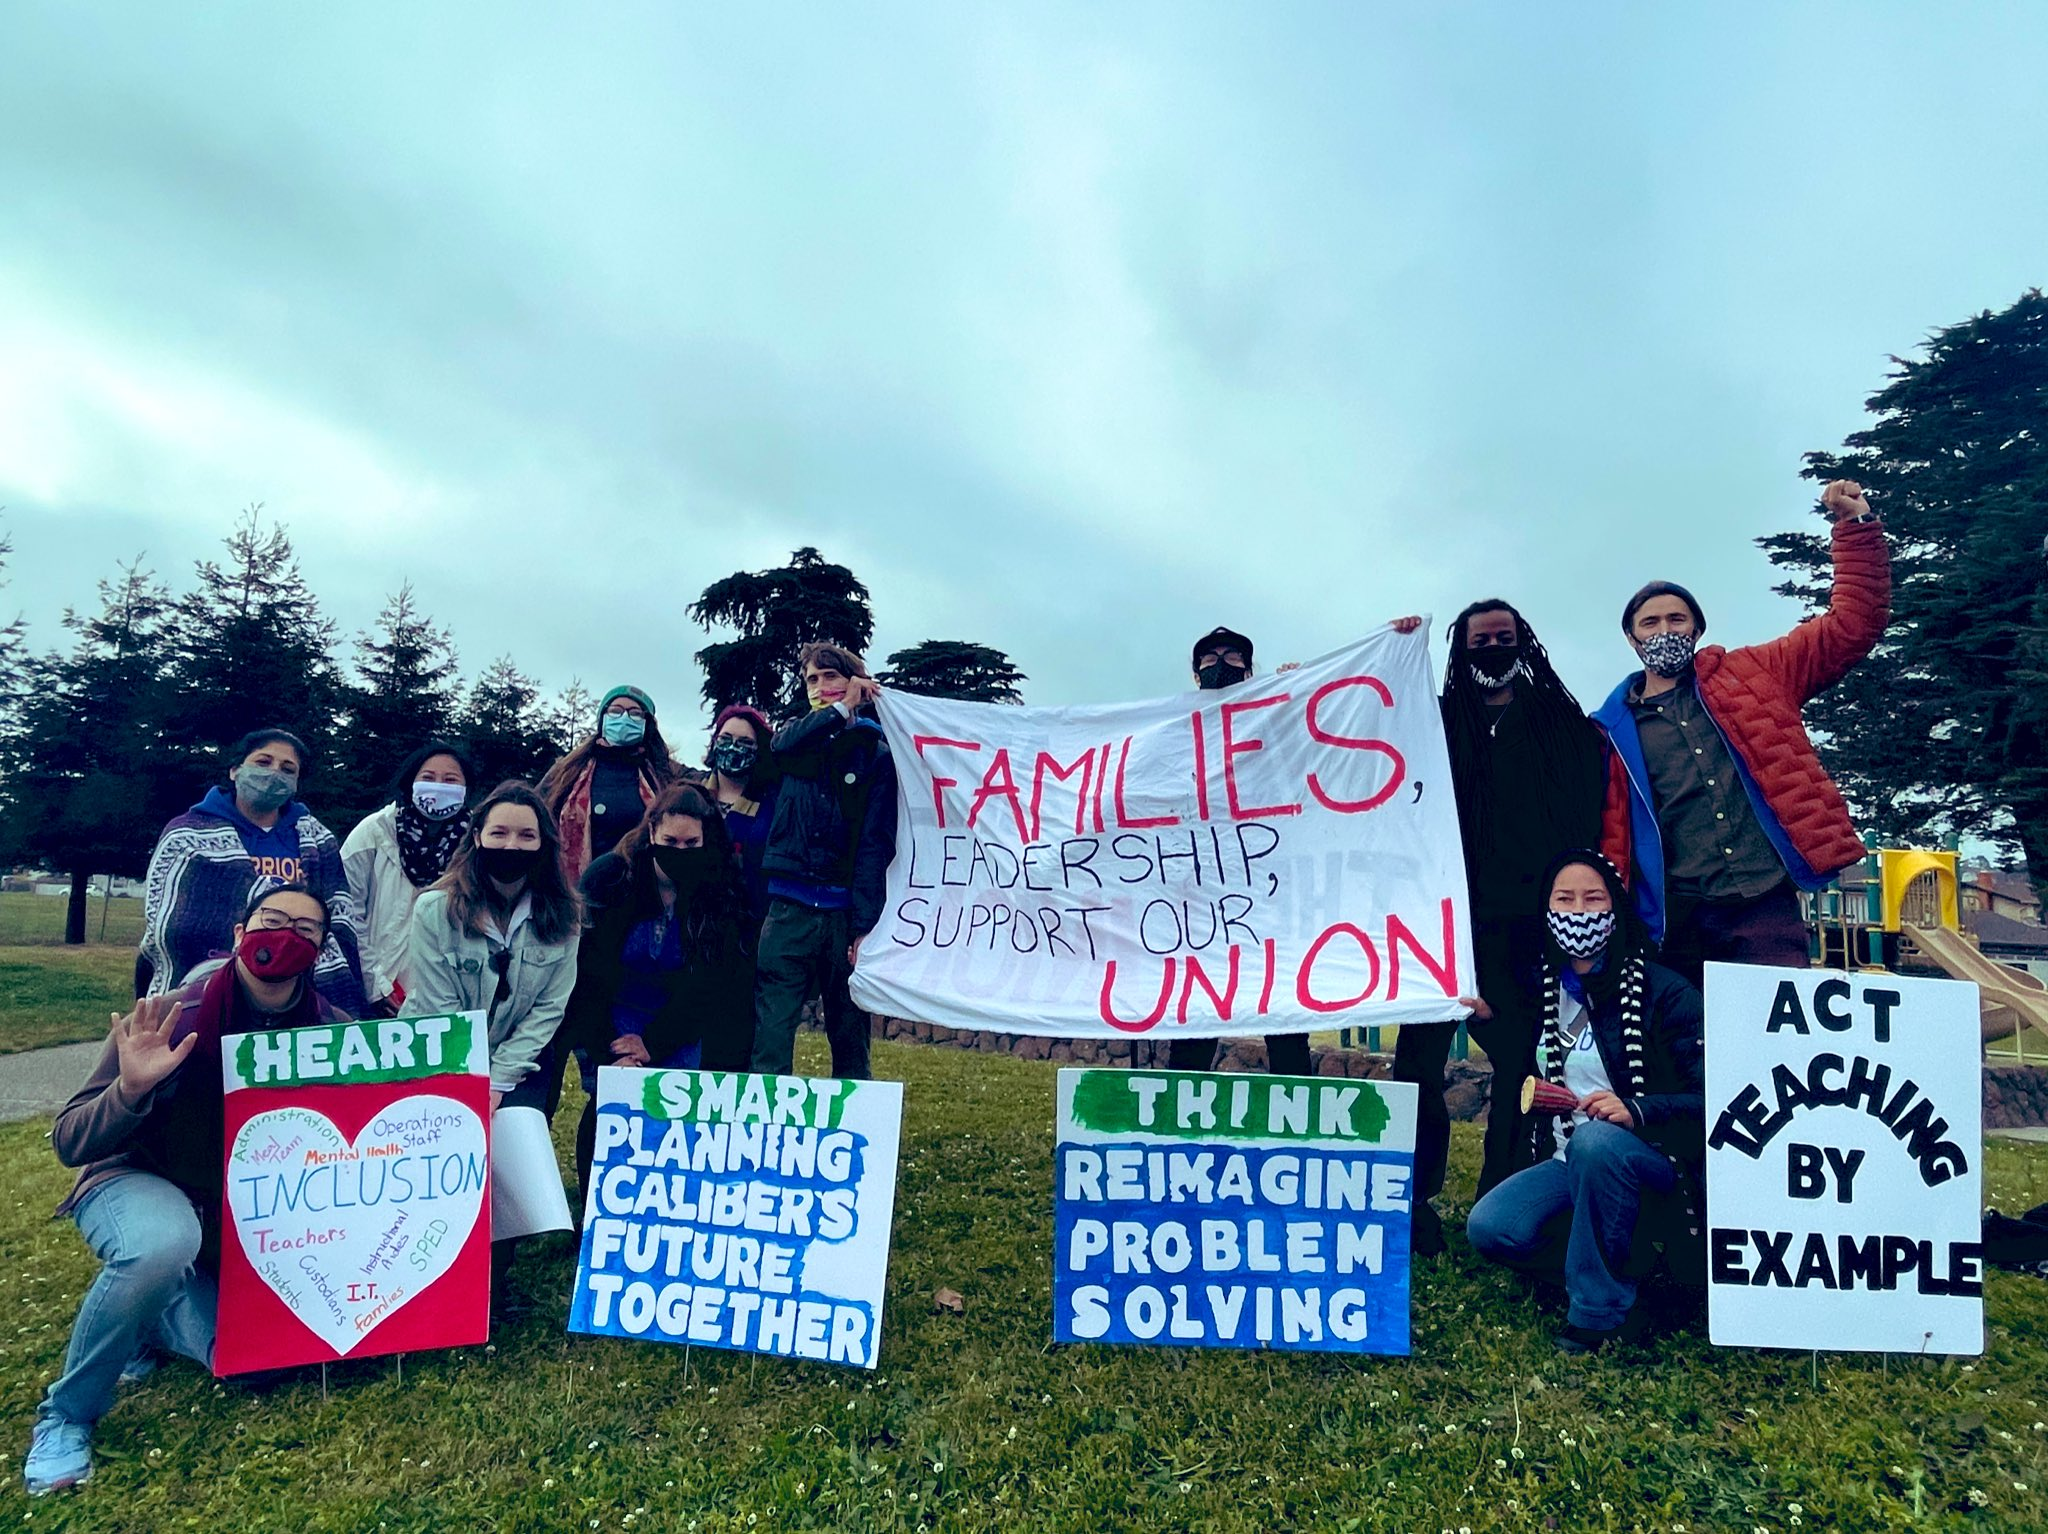 Members of the Caliber Workers Union gathered on grass holding a variety of signs and a banner in support of teachers and their union.